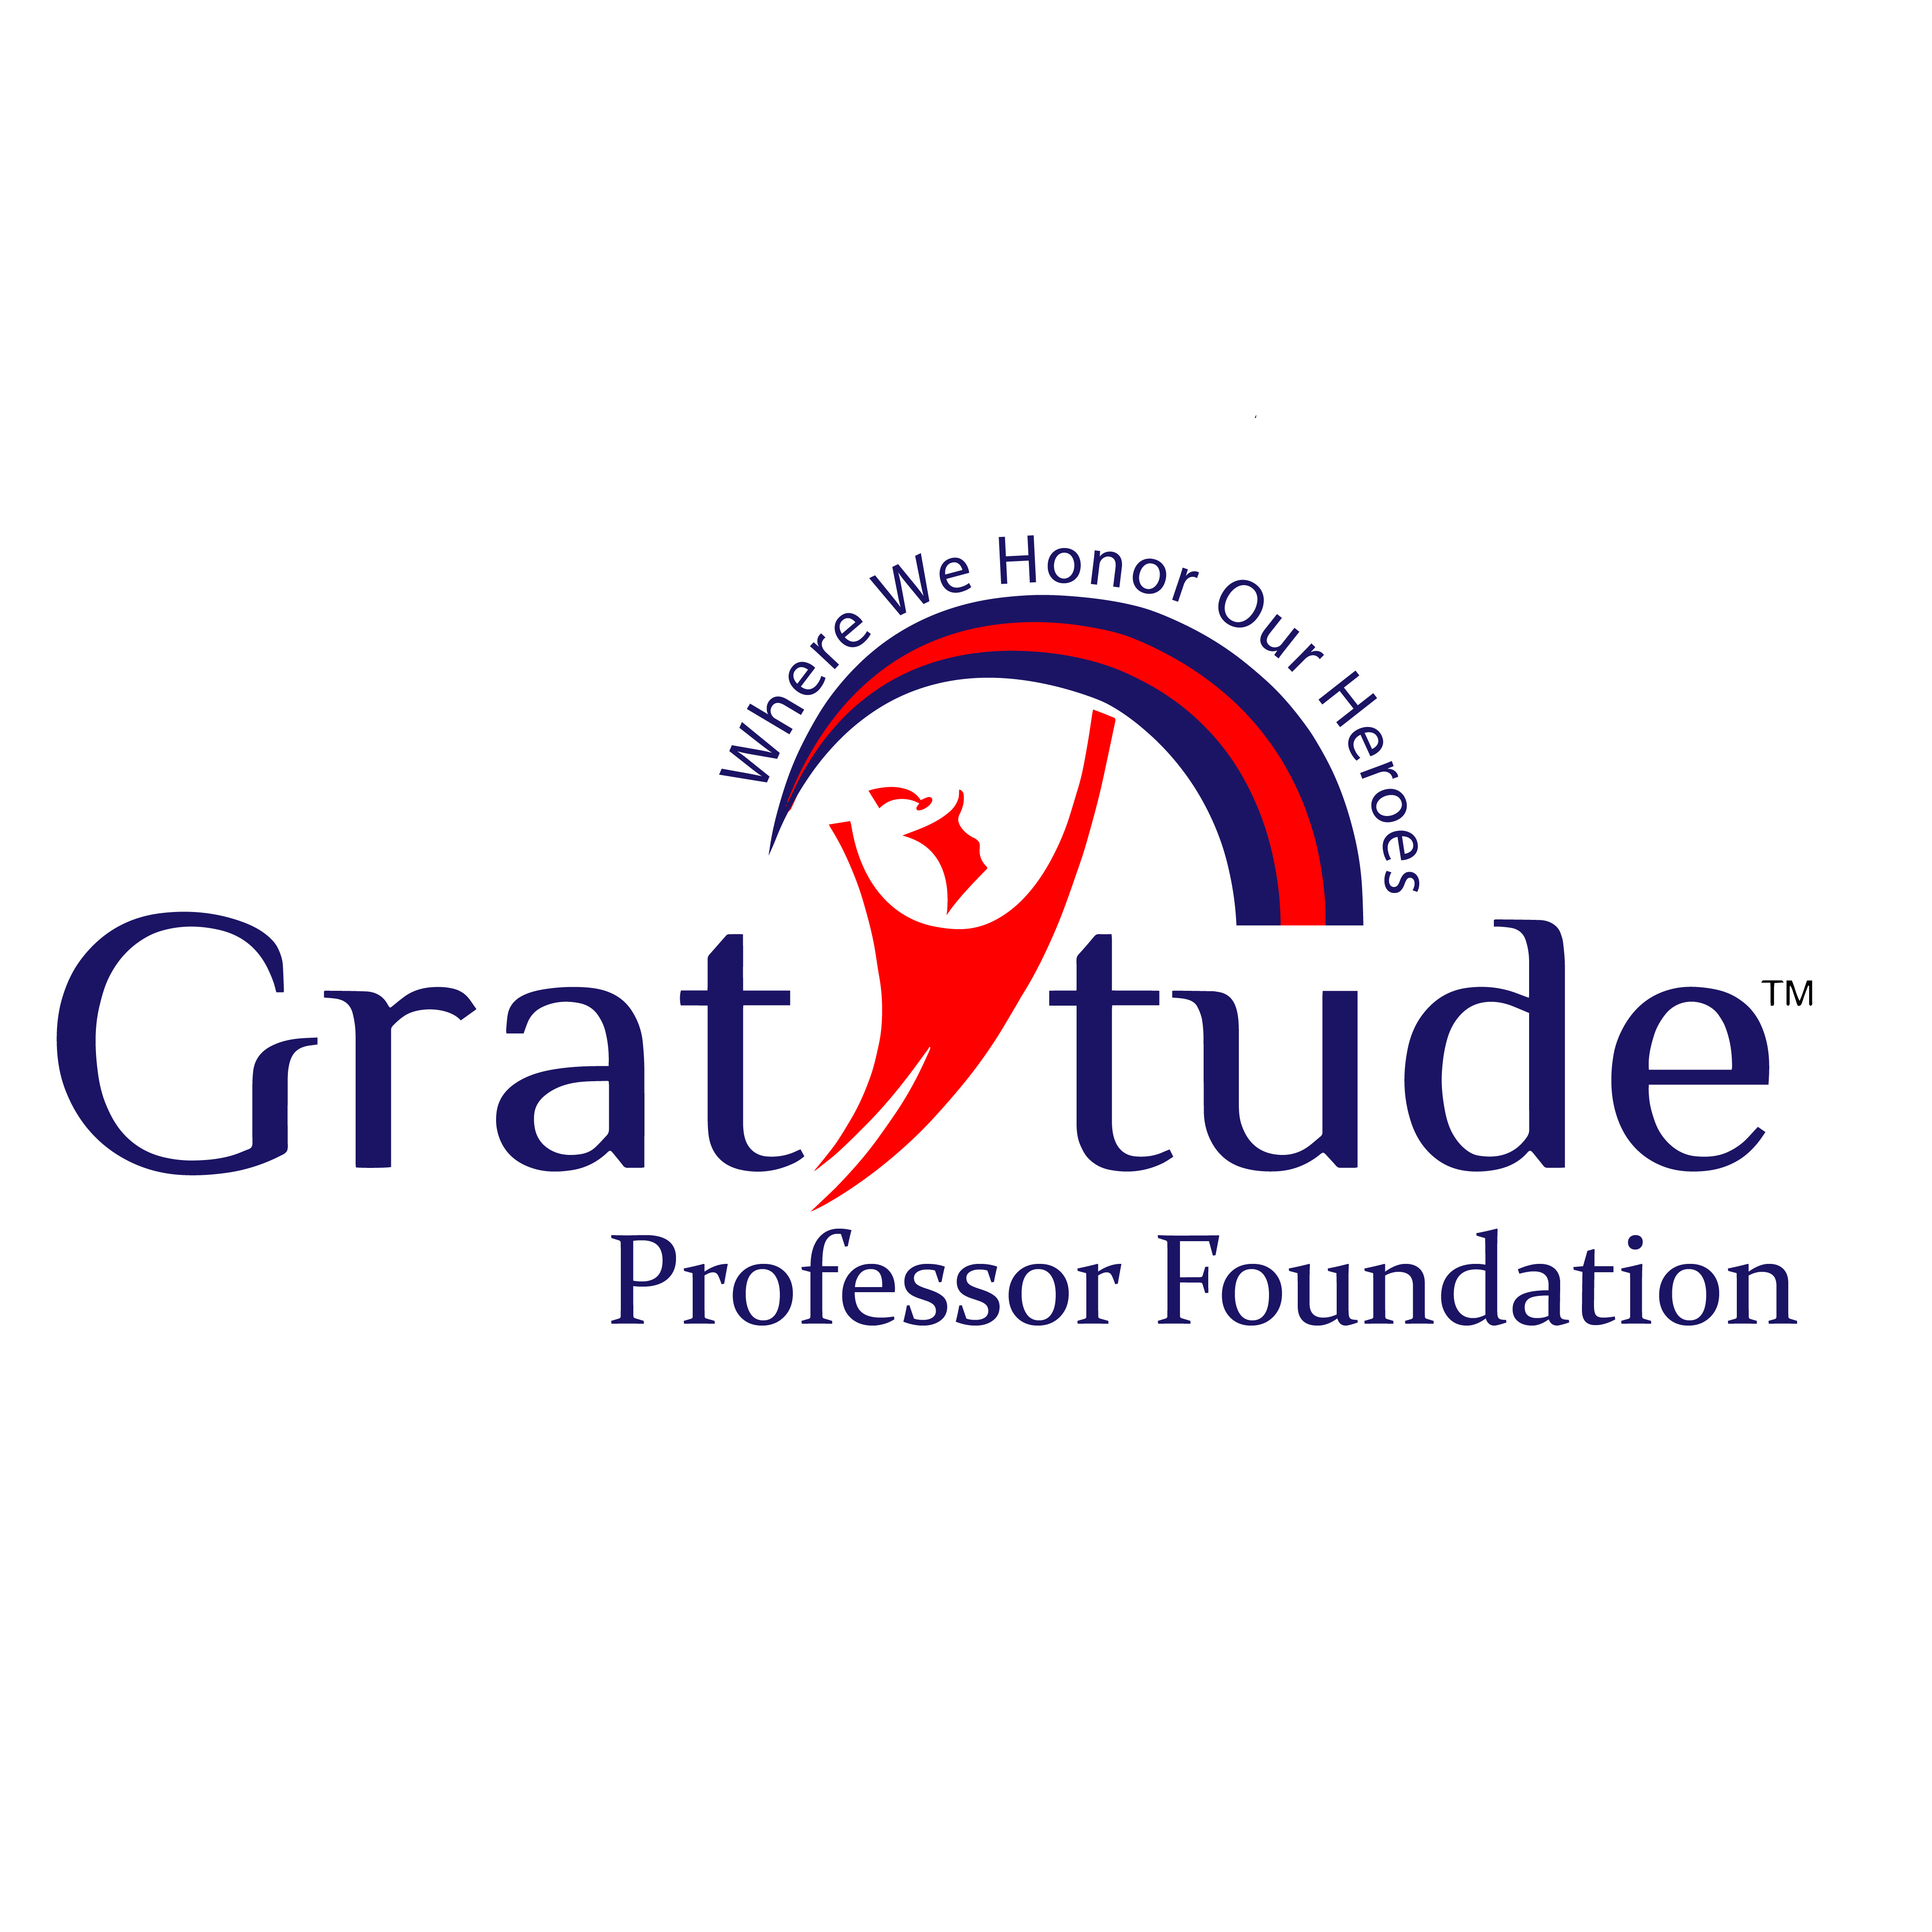 Gratitude Professor Foundation